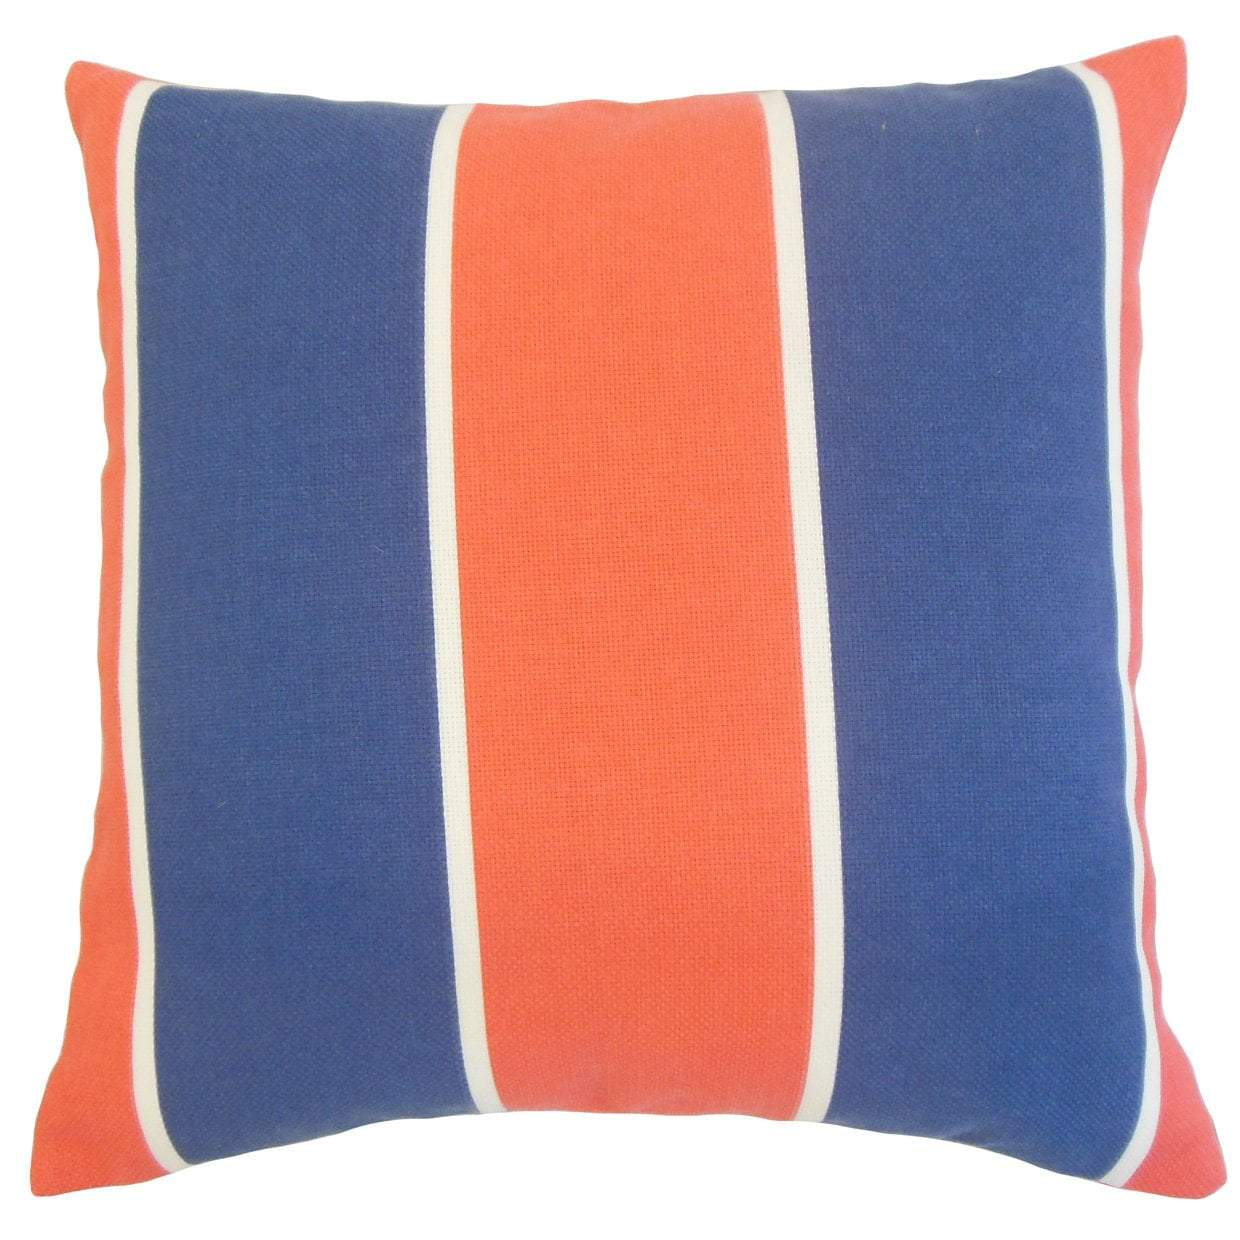 Holcombe Throw Pillow Cover